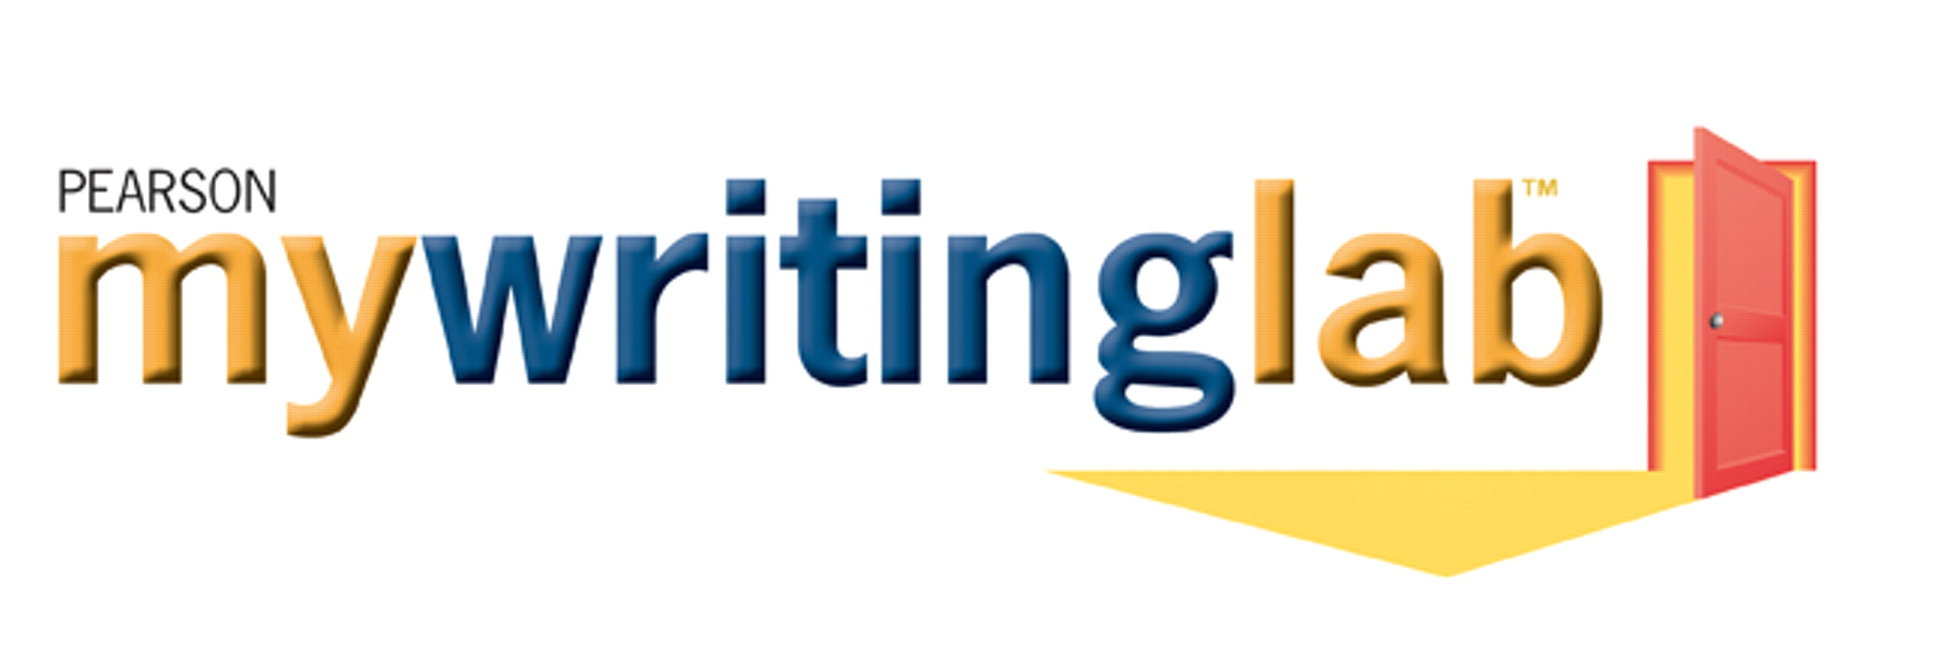 """pearson writing lab Writing practice auto-graded essays: the second diagnostic """"test"""" students complete at the very beginning of class is a 500-word, auto-graded writing prompt in mywritinglab, entitled overcoming a challenge this is completed in the first class period for one hour in the computer lab."""